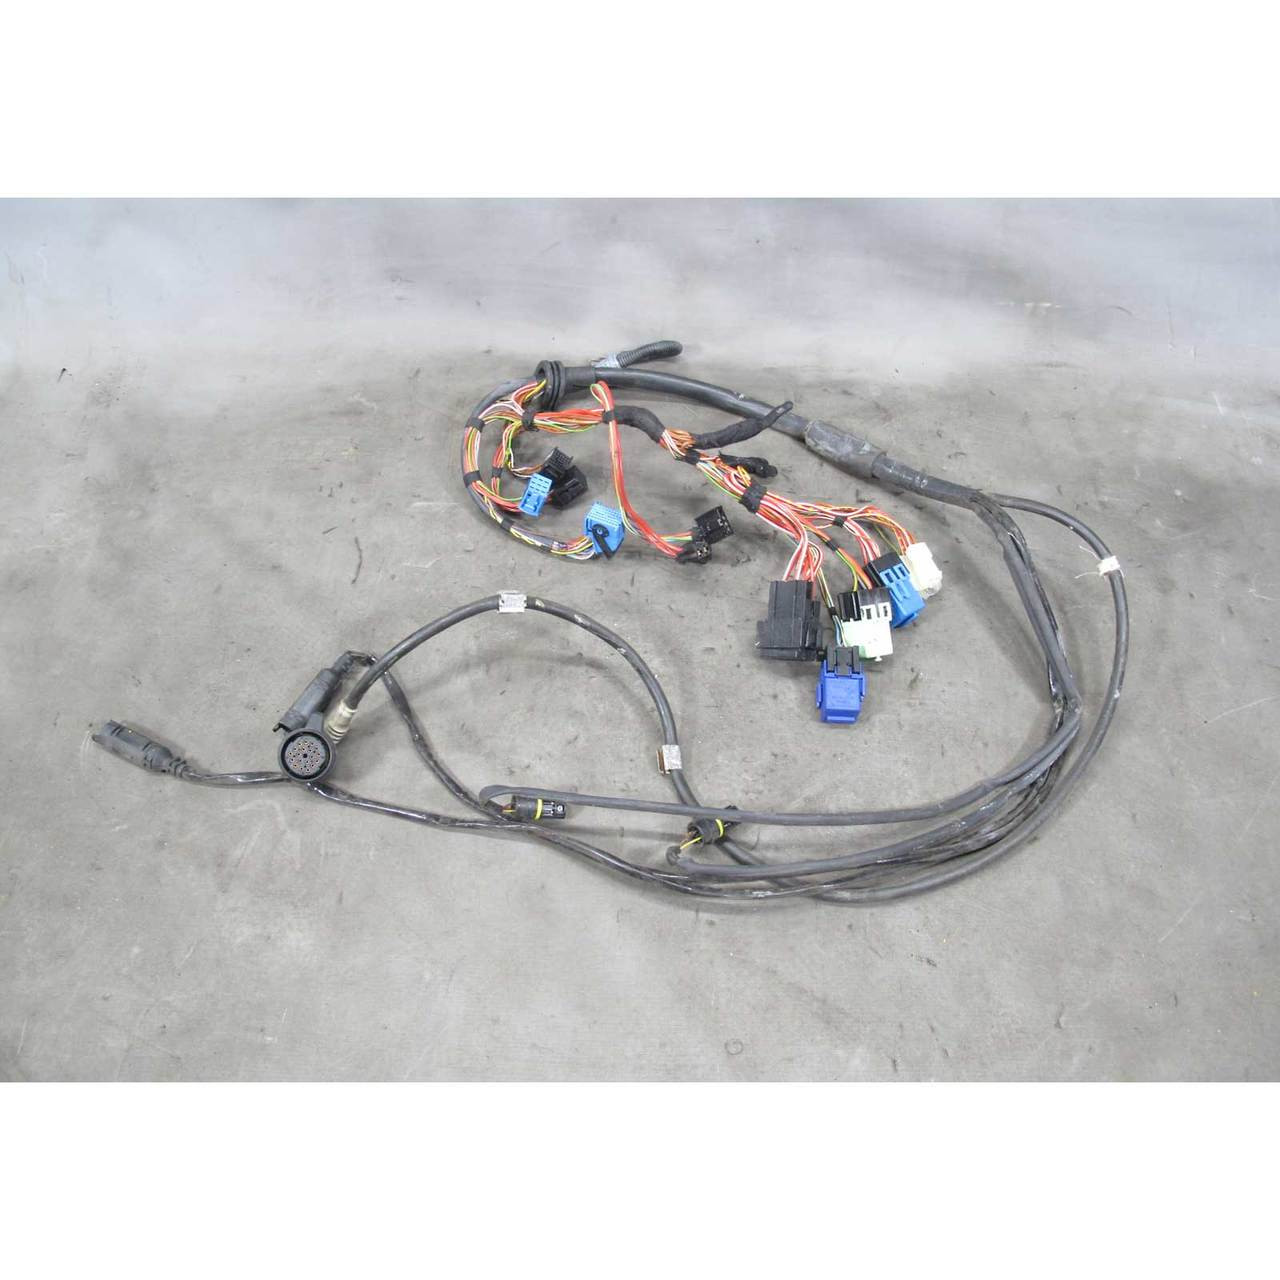 hight resolution of  2001 2002 bmw e46 x drive m54 automatic transmission wiring harness on bmw led